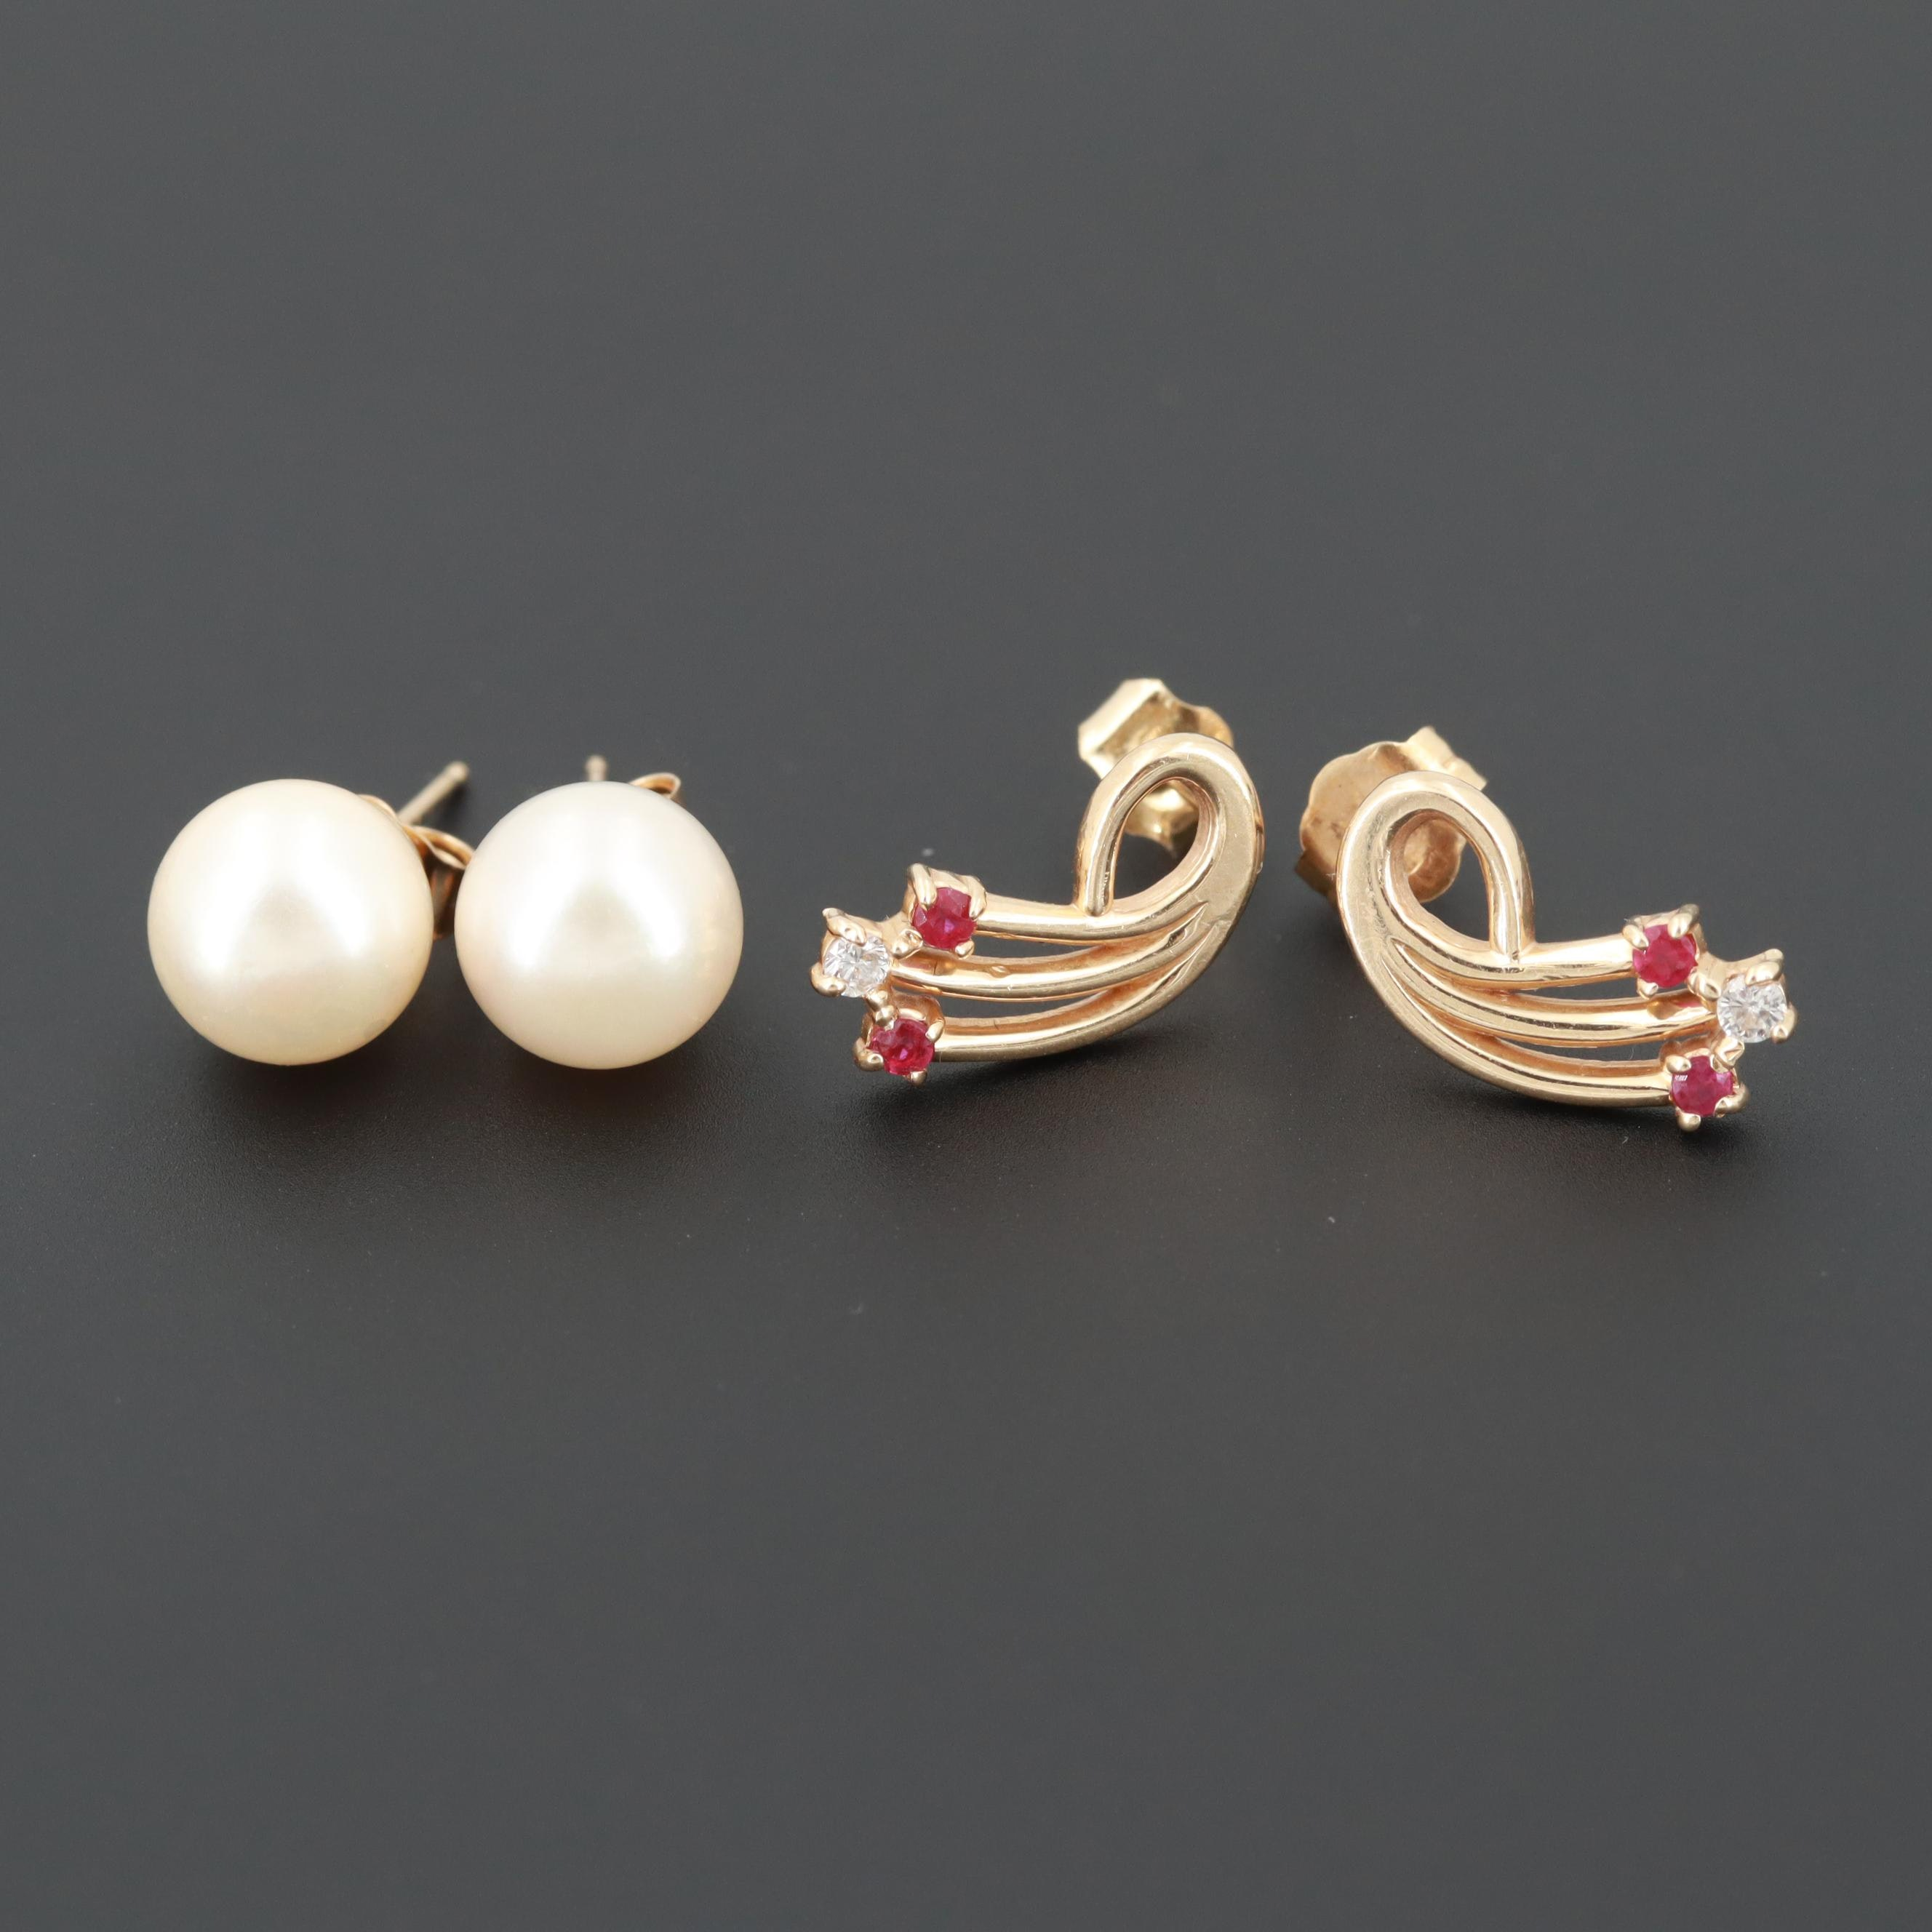 14K Yellow Gold Cultured Pearl, Diamond and Ruby Earrings